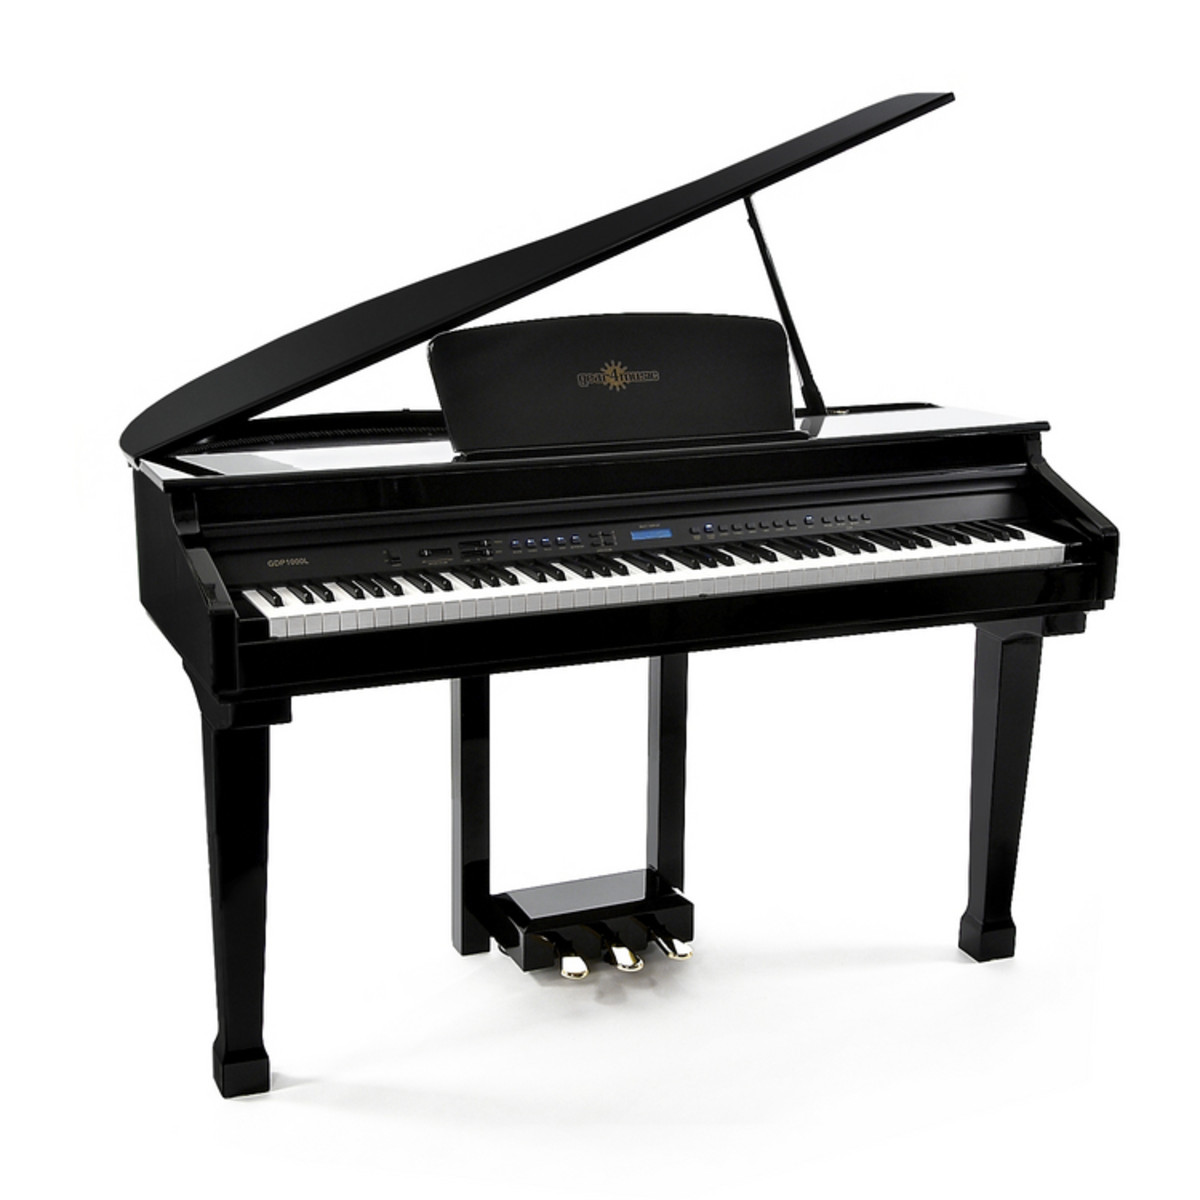 Digital baby grand piano by gear4music nearly new at for What size is a grand piano